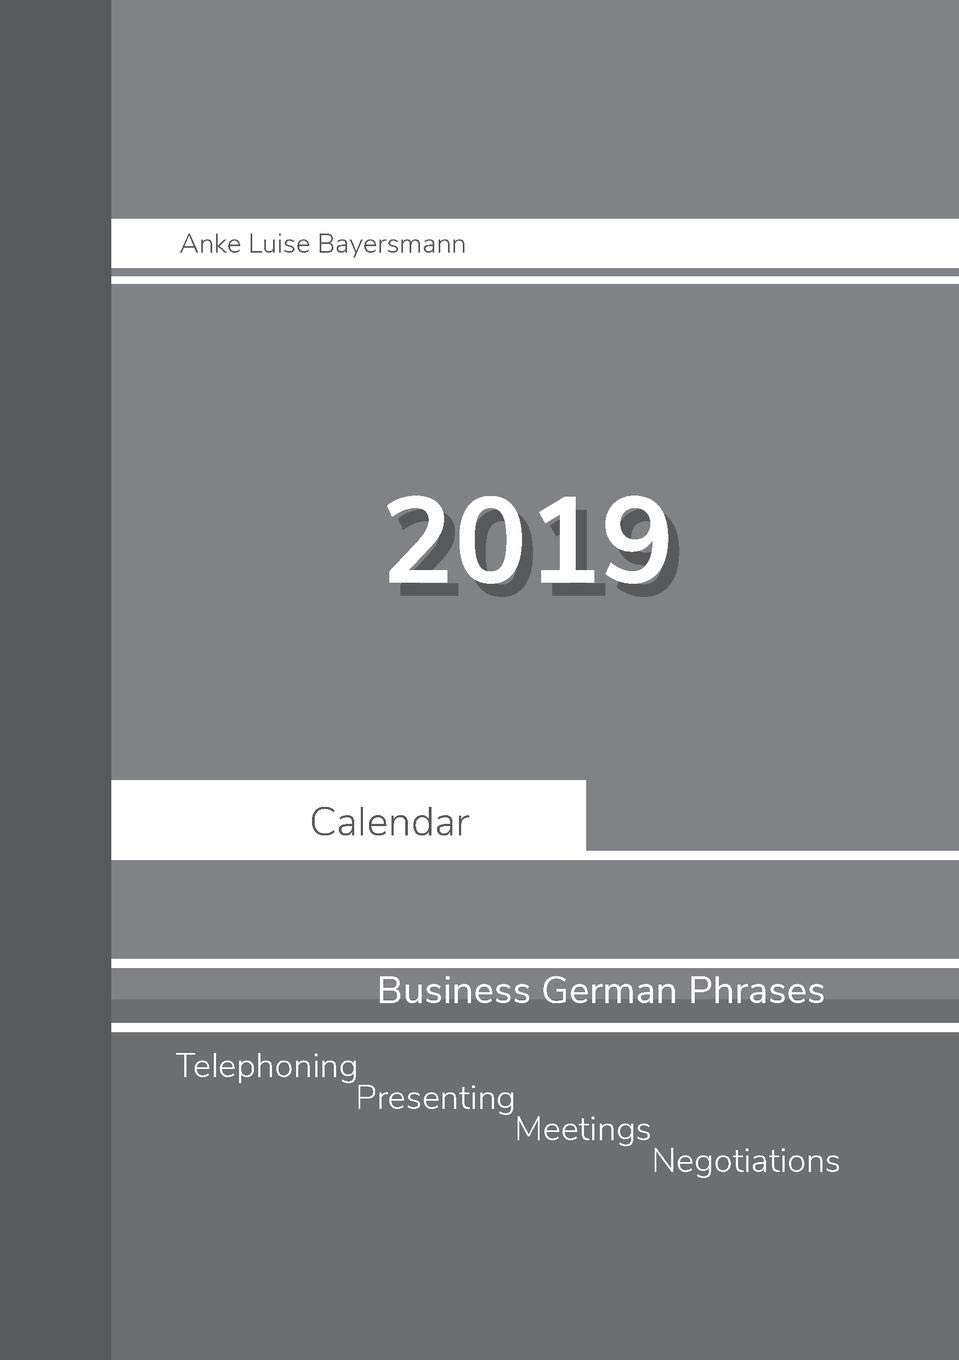 2019 Anke Luise Bayersmann Calendar Business German Phrases by Books on Demand